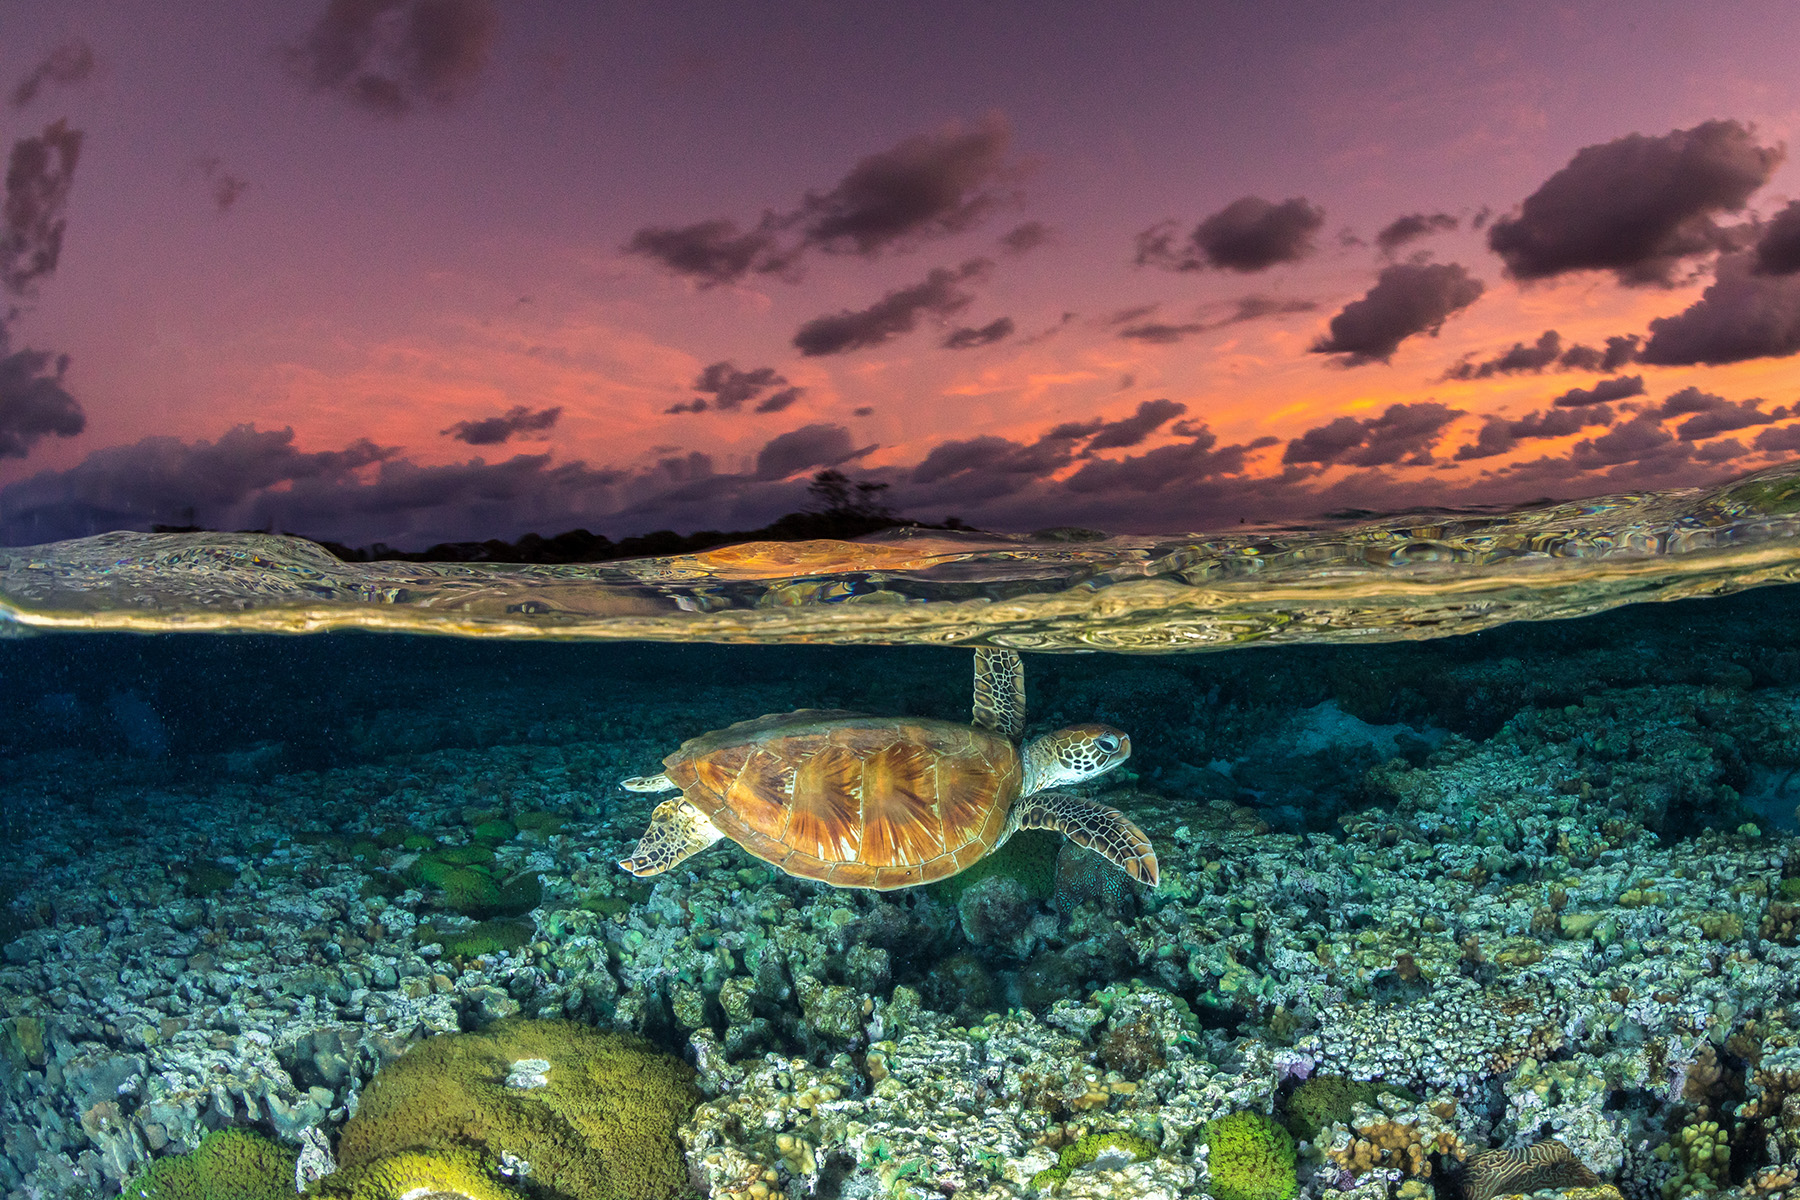 A green turtle at sunset on the Great Barrier Reef, Australia. © Jordan Robins / Coral Reef Image Bank